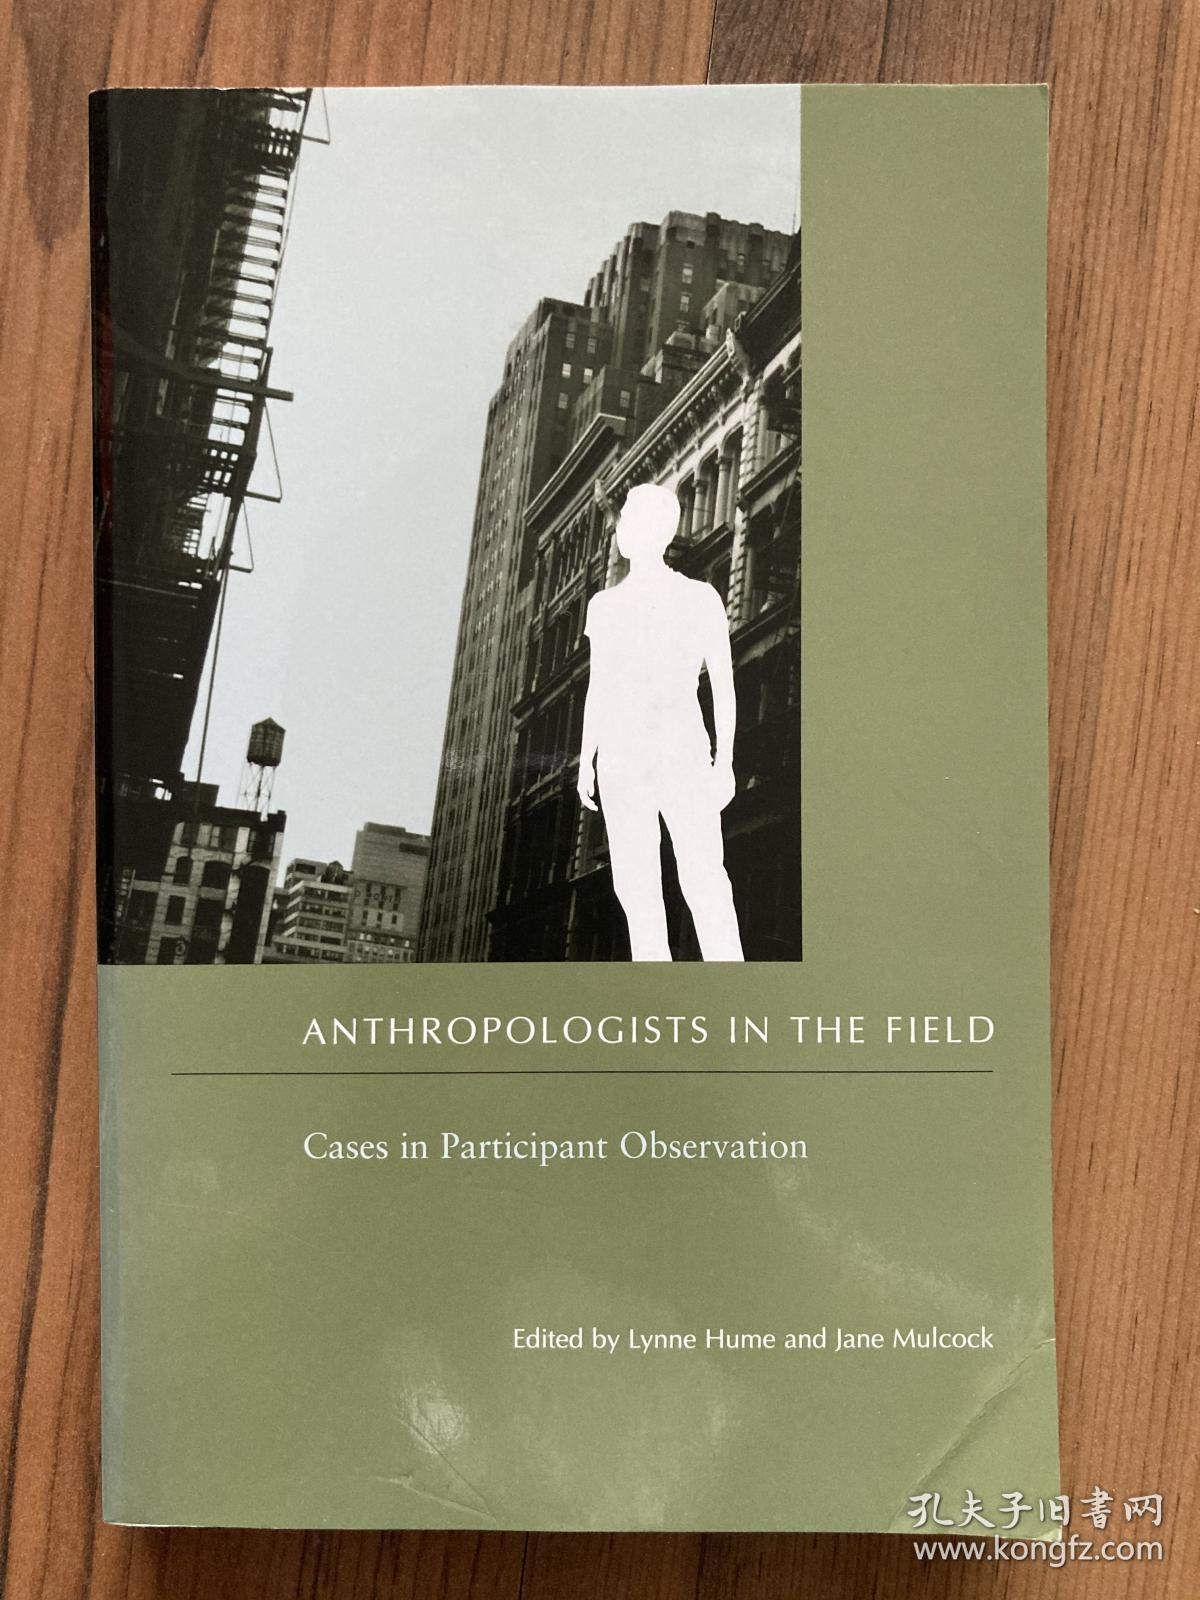 Anthropologists in the field, Case in participant observation